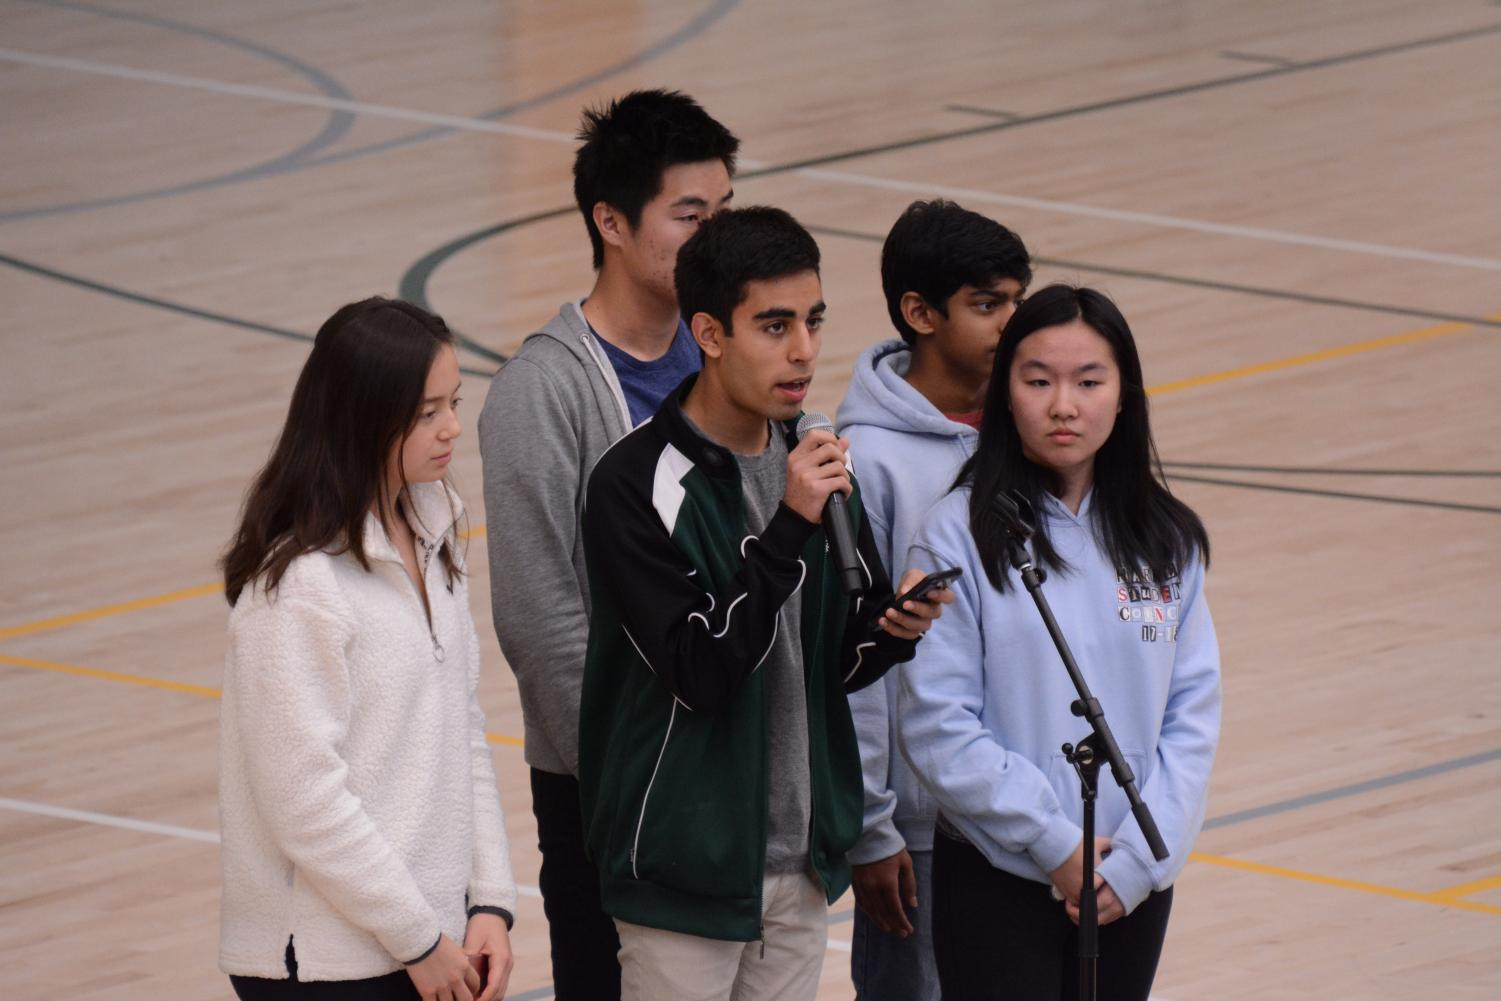 Student council members  Alycia Cary (11), David Wen (12), Avi Gulati (10), Akshay Manglik (9) and Kat Zhang (11) announce details about the upper school's upcoming support and advocacy initiatives in response to the recent Marjory Stoneman Douglas (MSD) shooting. Among these efforts include an optional vigil in the athletics center this Wednesday and a gun debate and town hall at 3:15 p.m. in Nichols Auditorium on March 23.